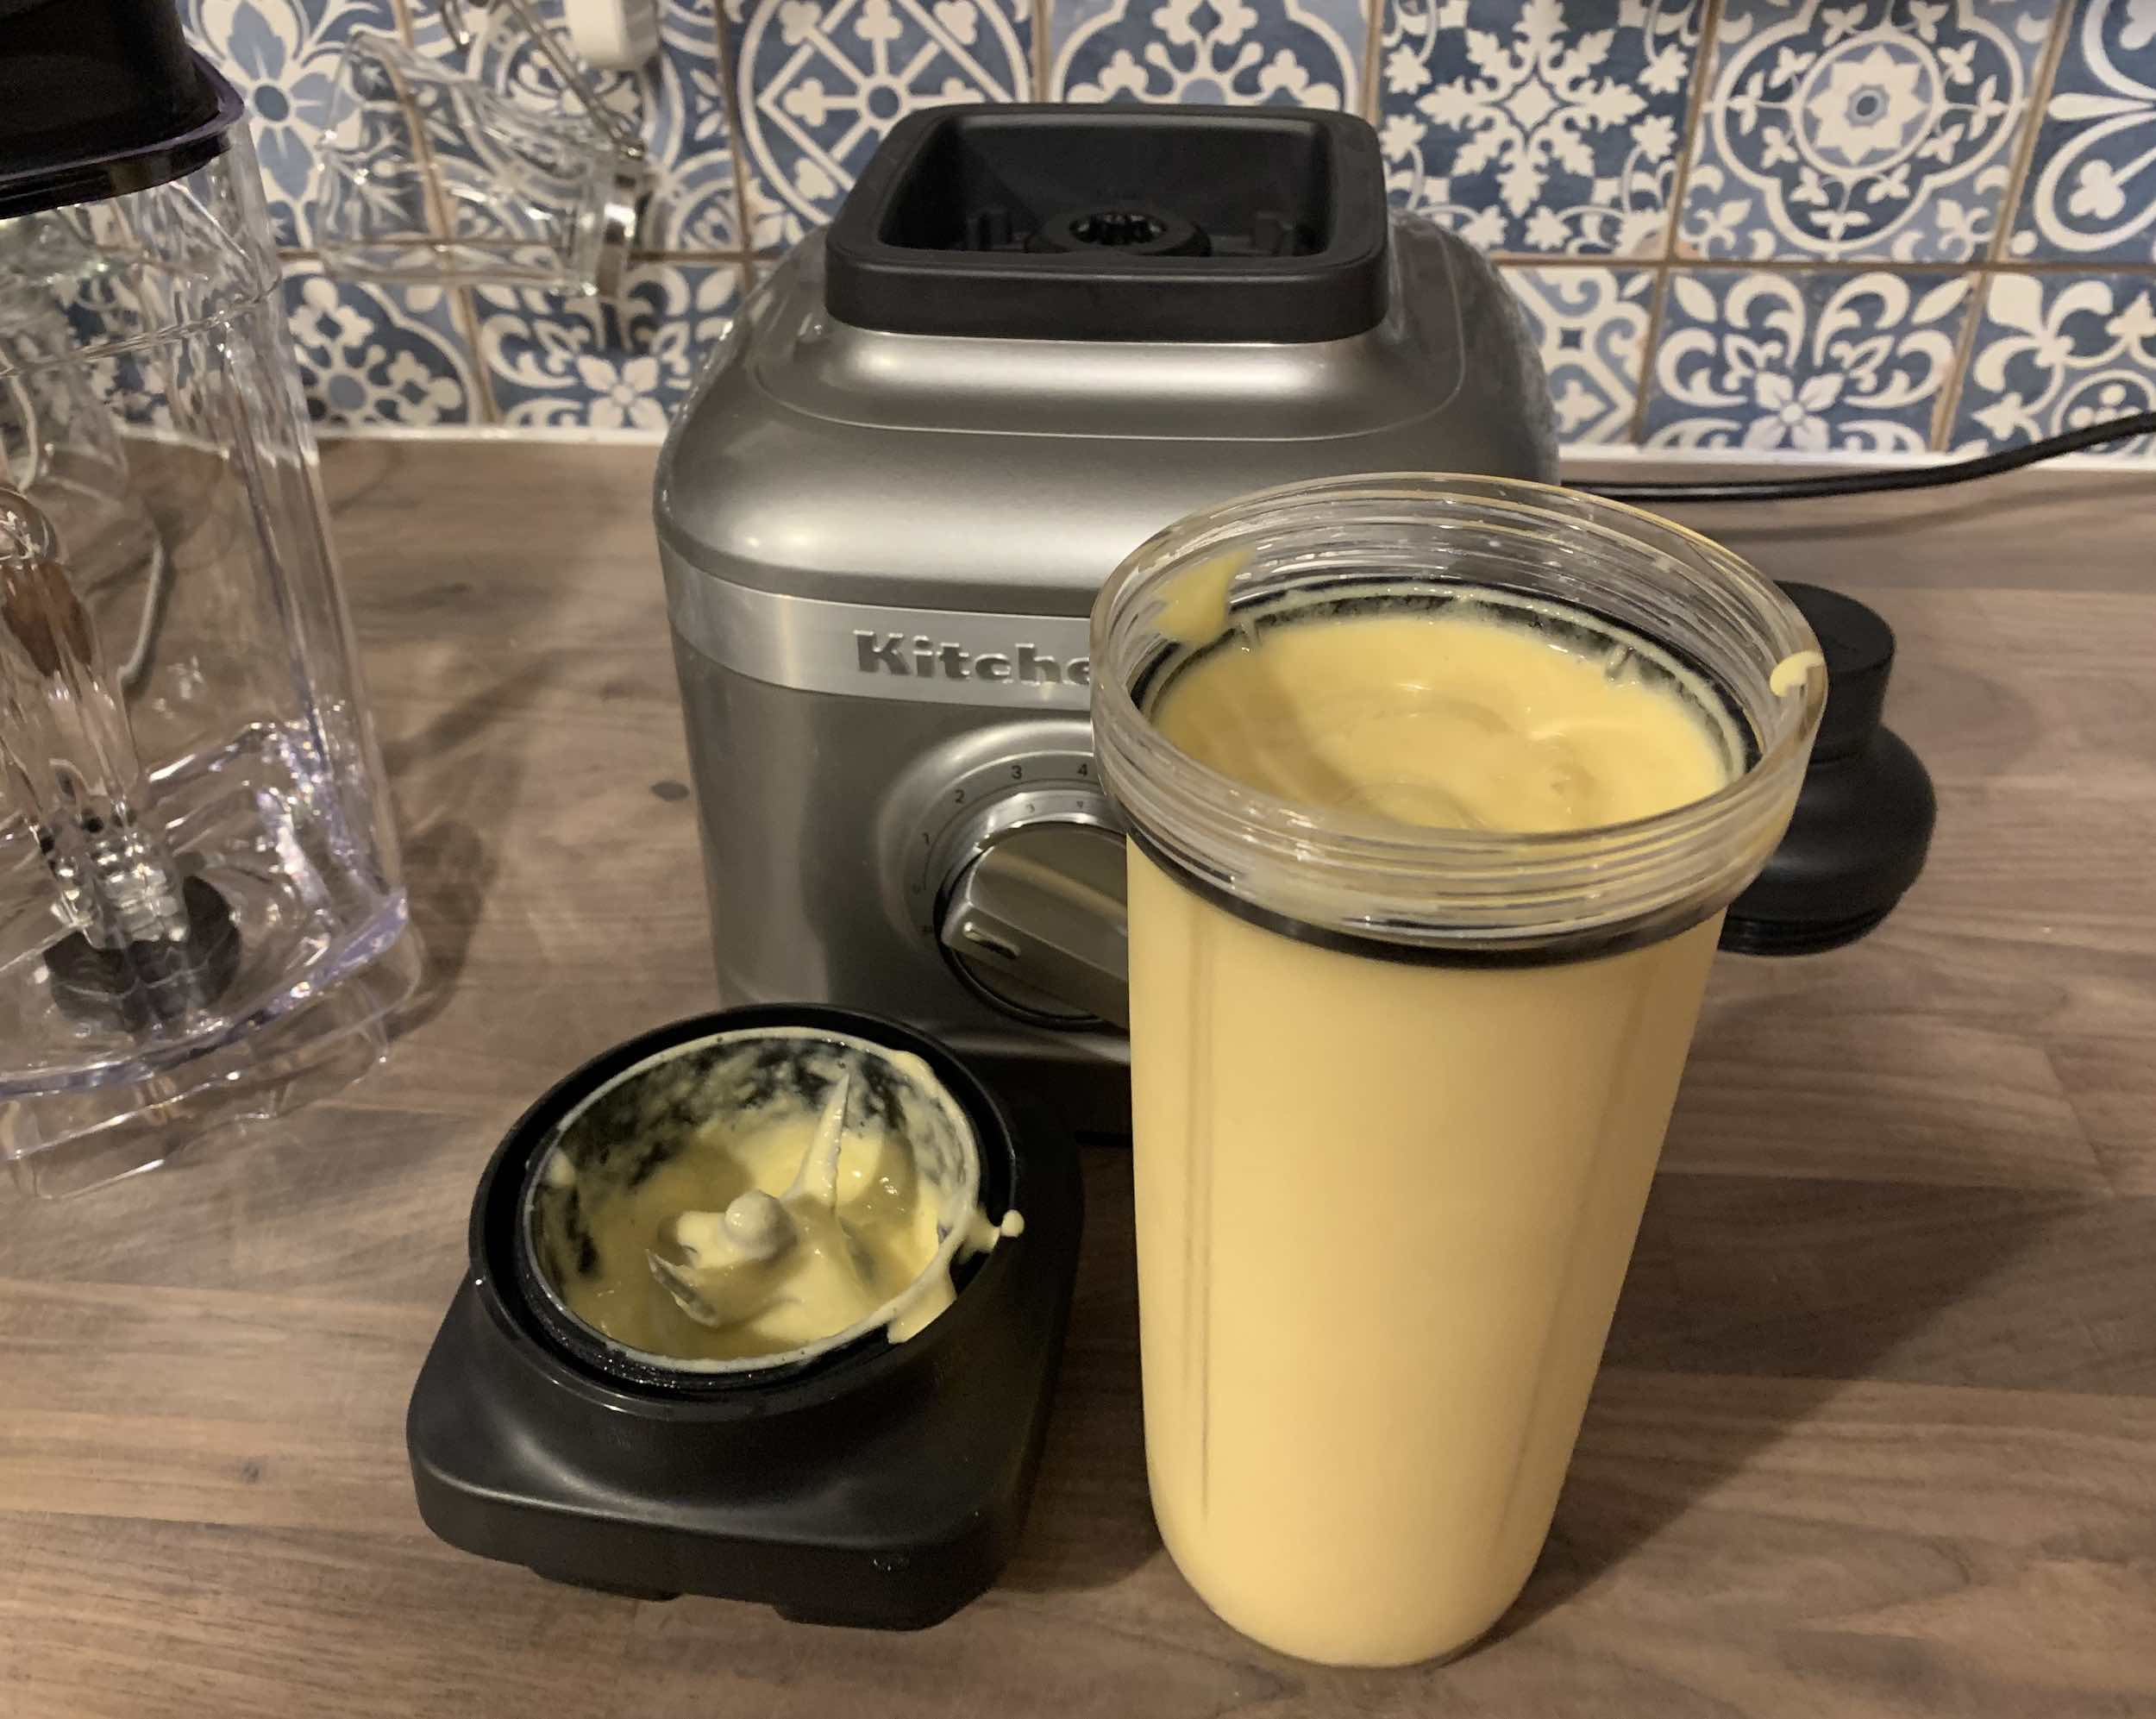 KitchenAid K400 blending cup and lid